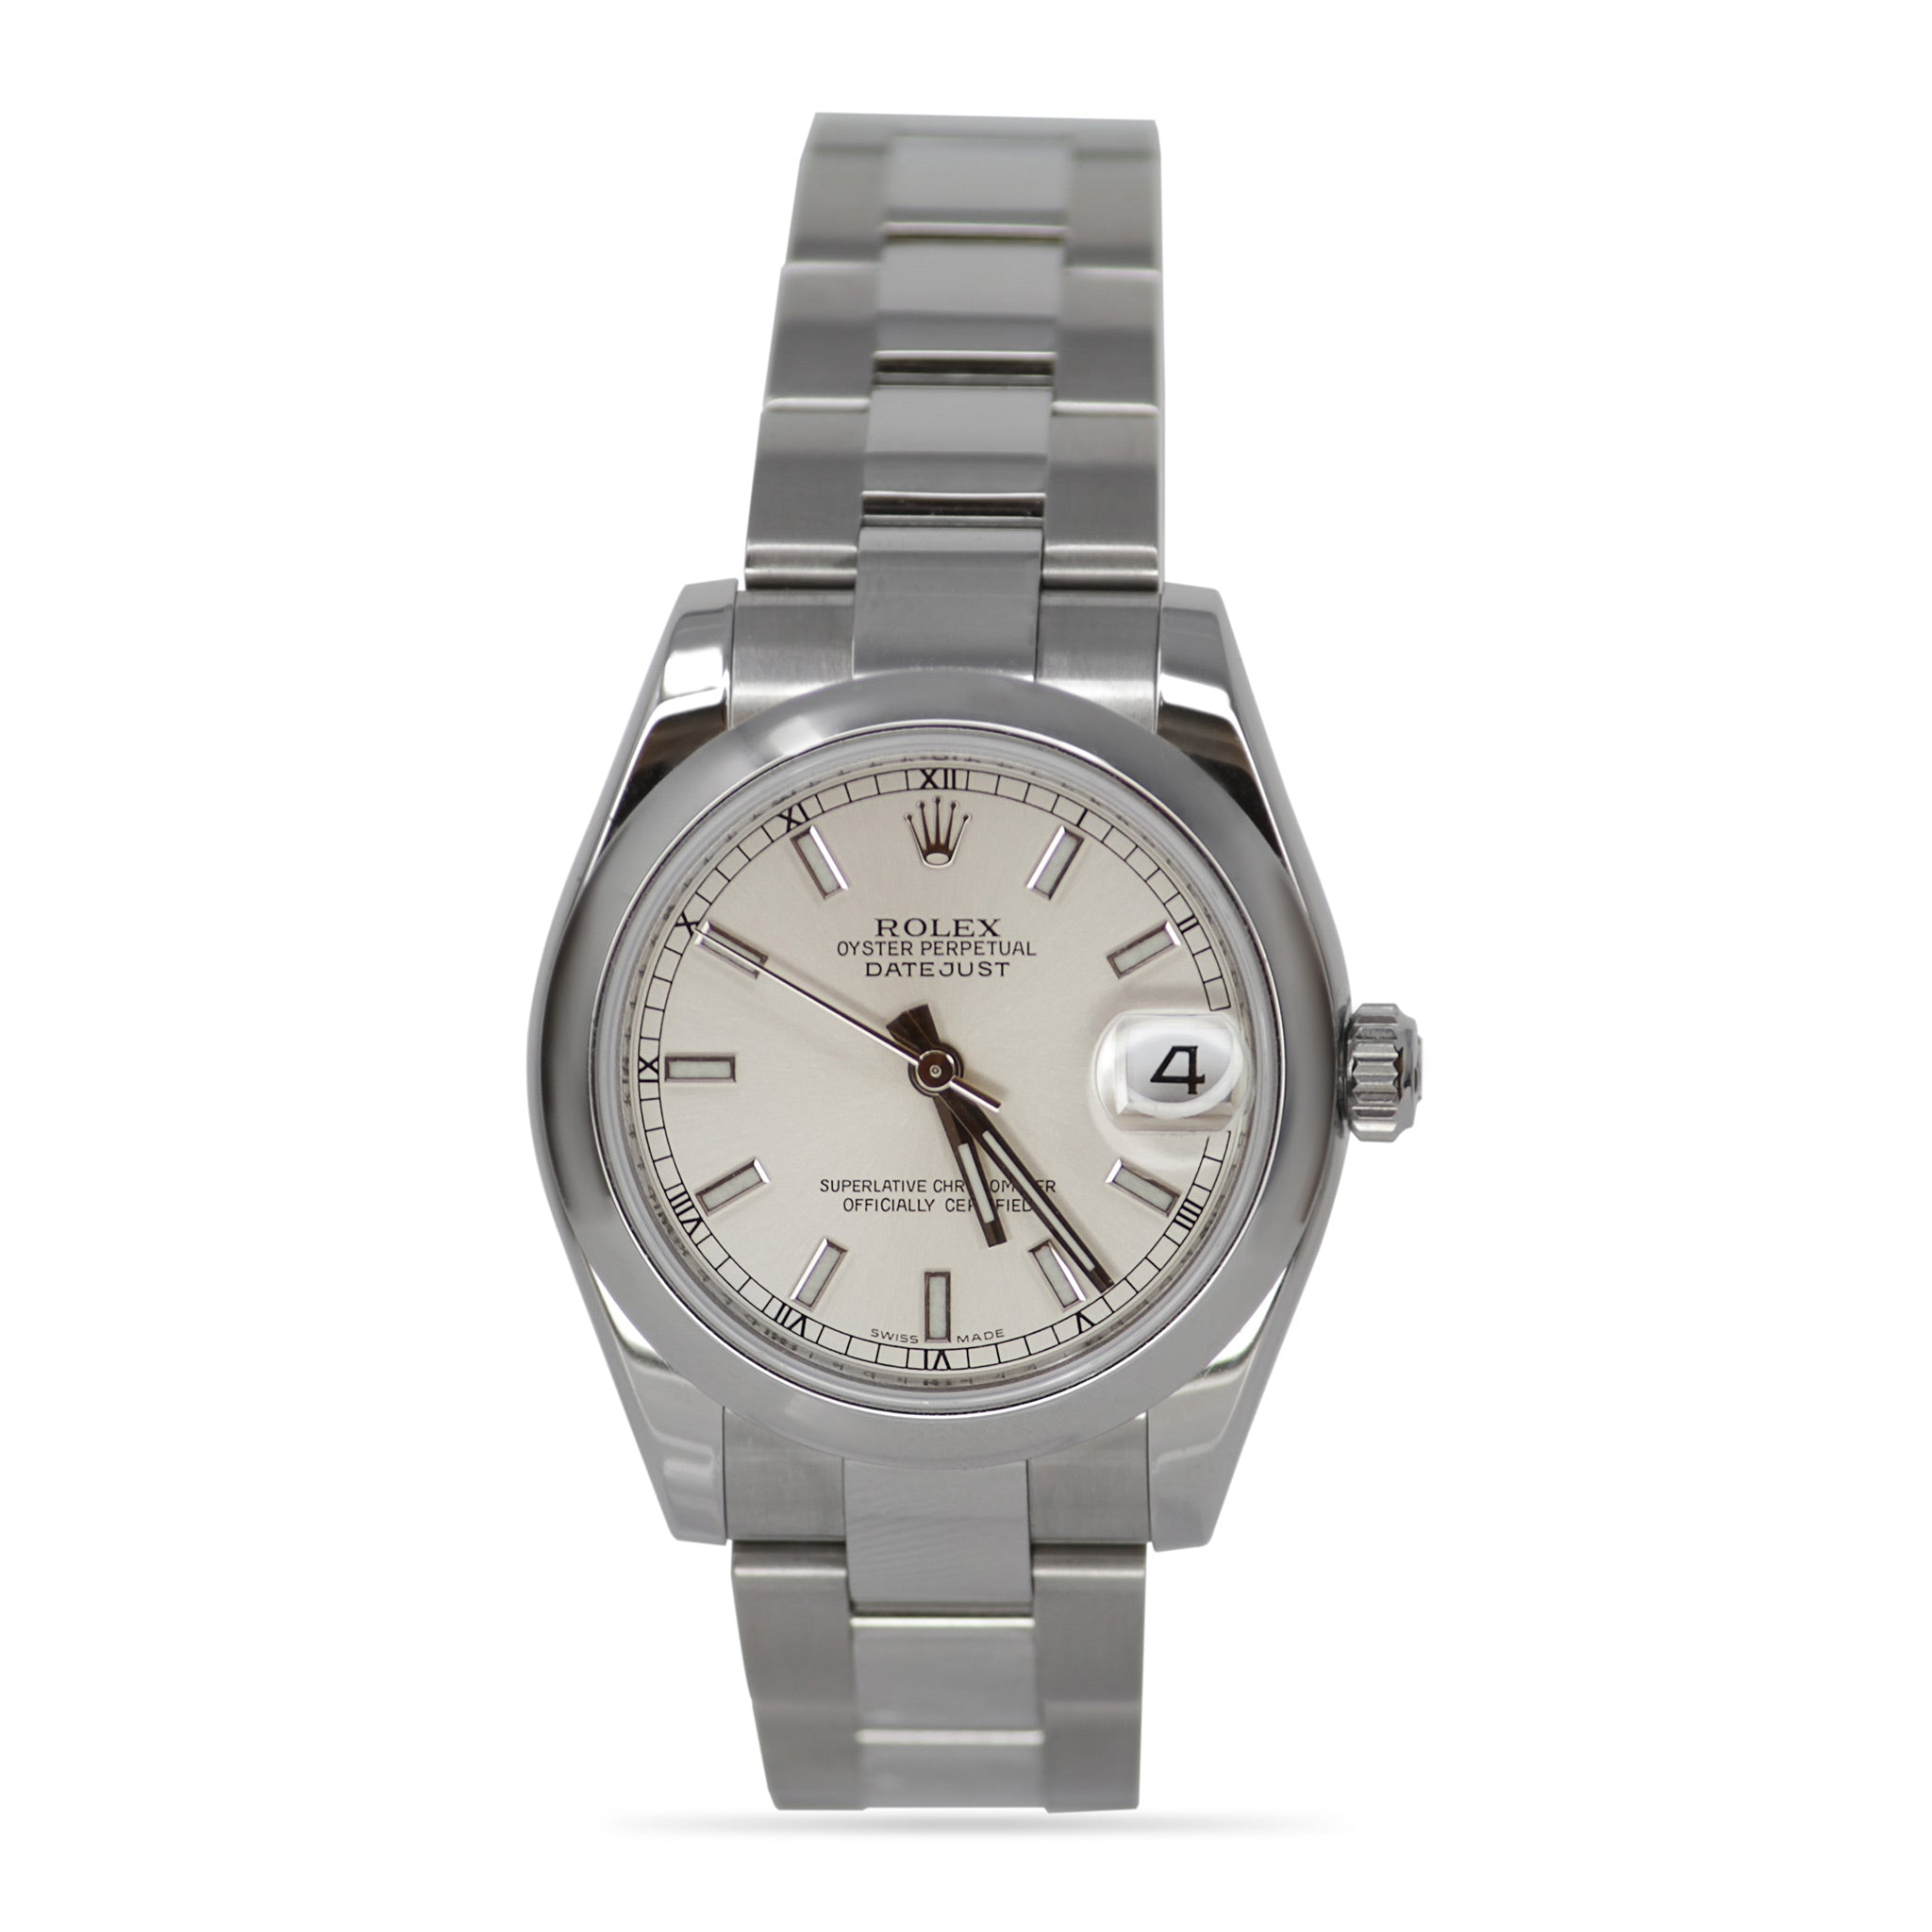 Rolex Oyster Perpetual Stainless Steel Datejust from Glee! Live! 2011